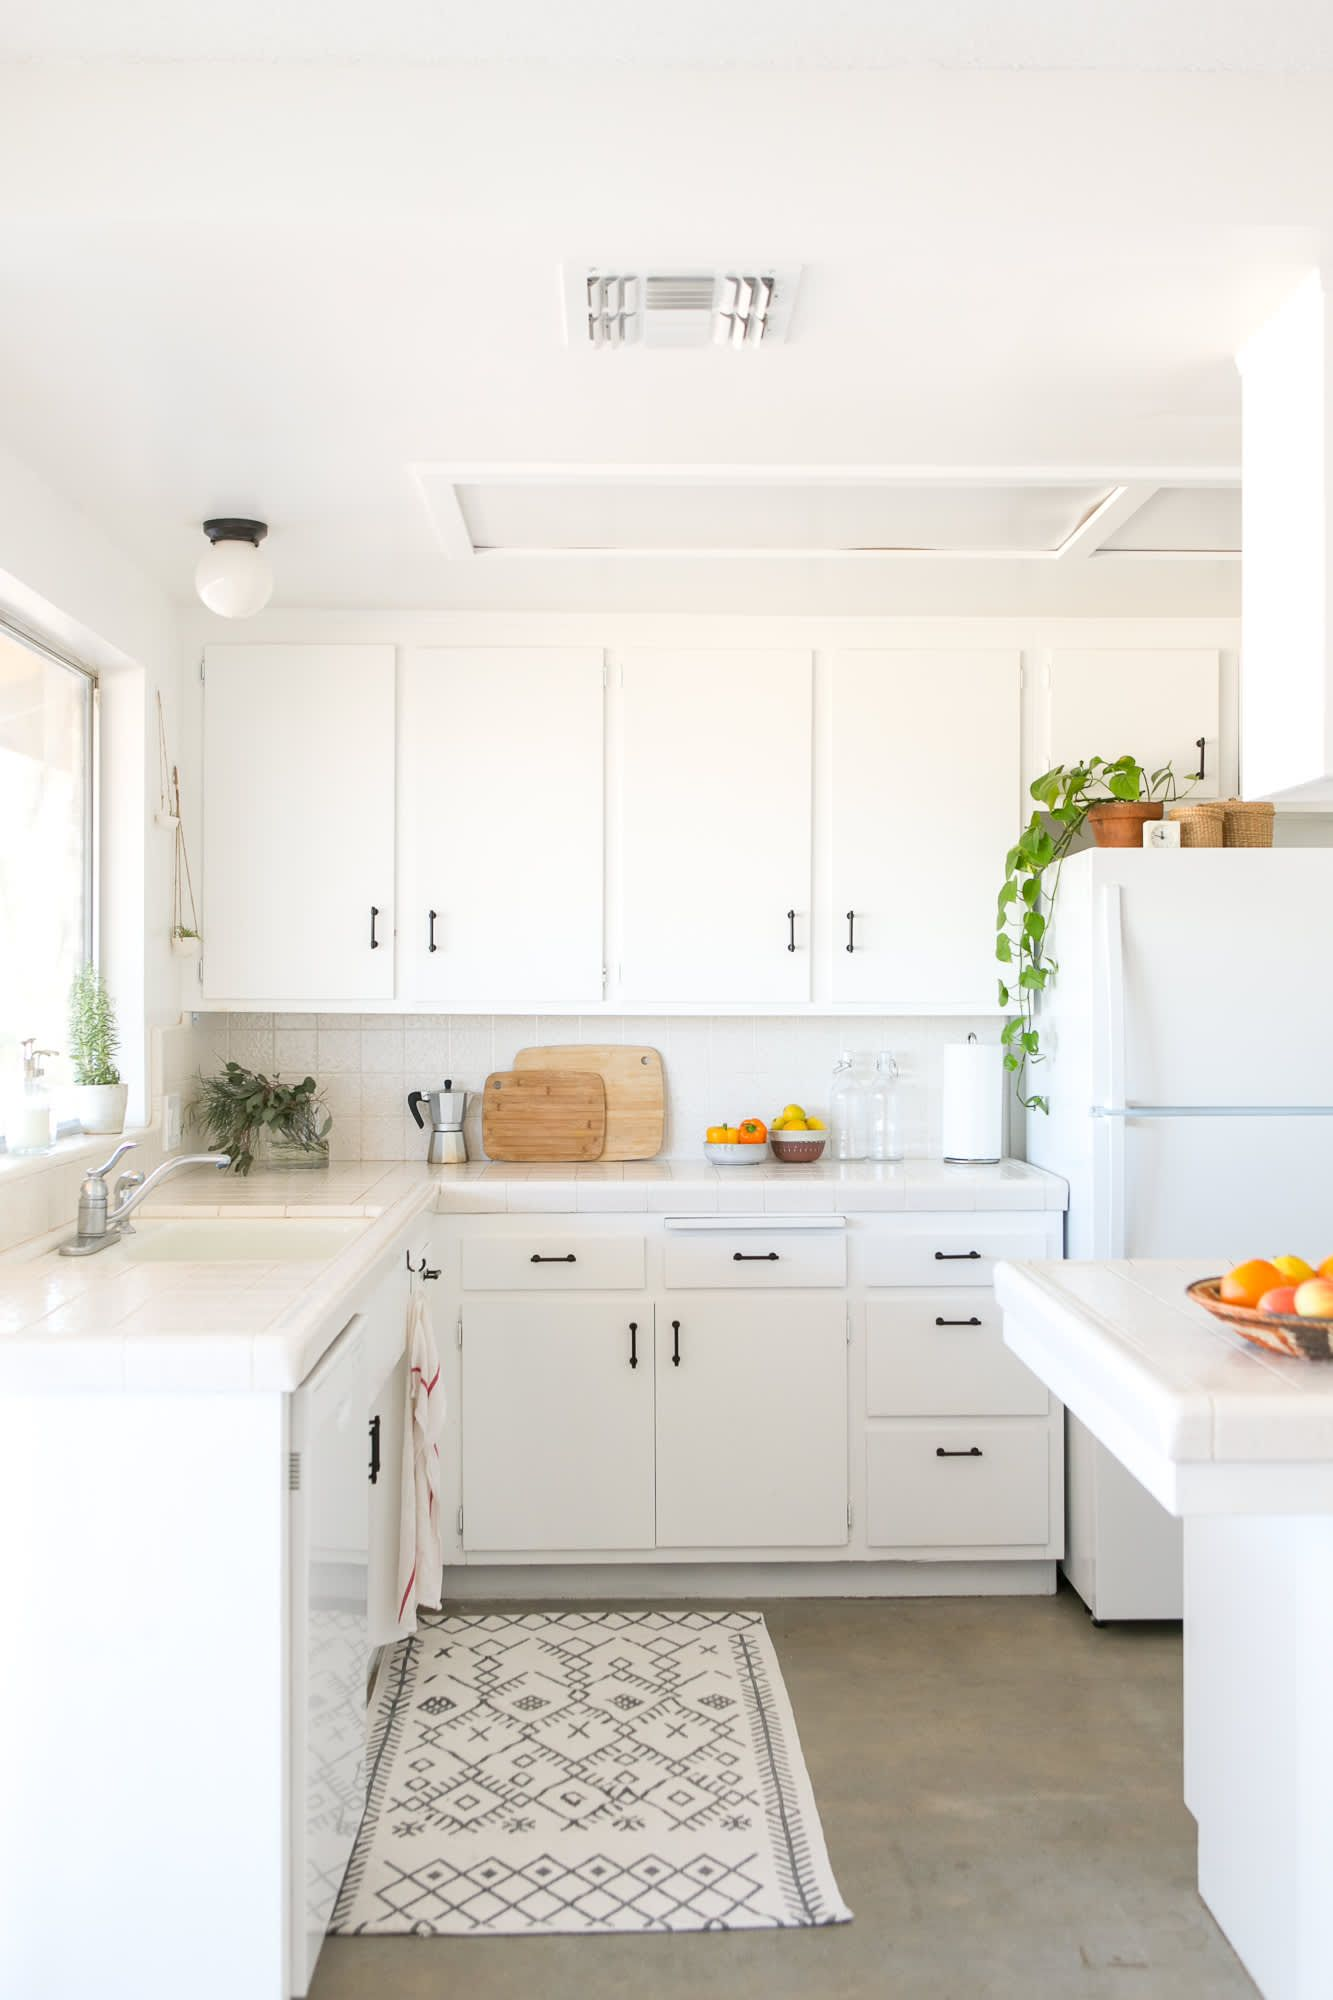 25 White Kitchens That Are Anything But Bland Basic Kitchen Design Classic Kitchens Kitchen Remodel